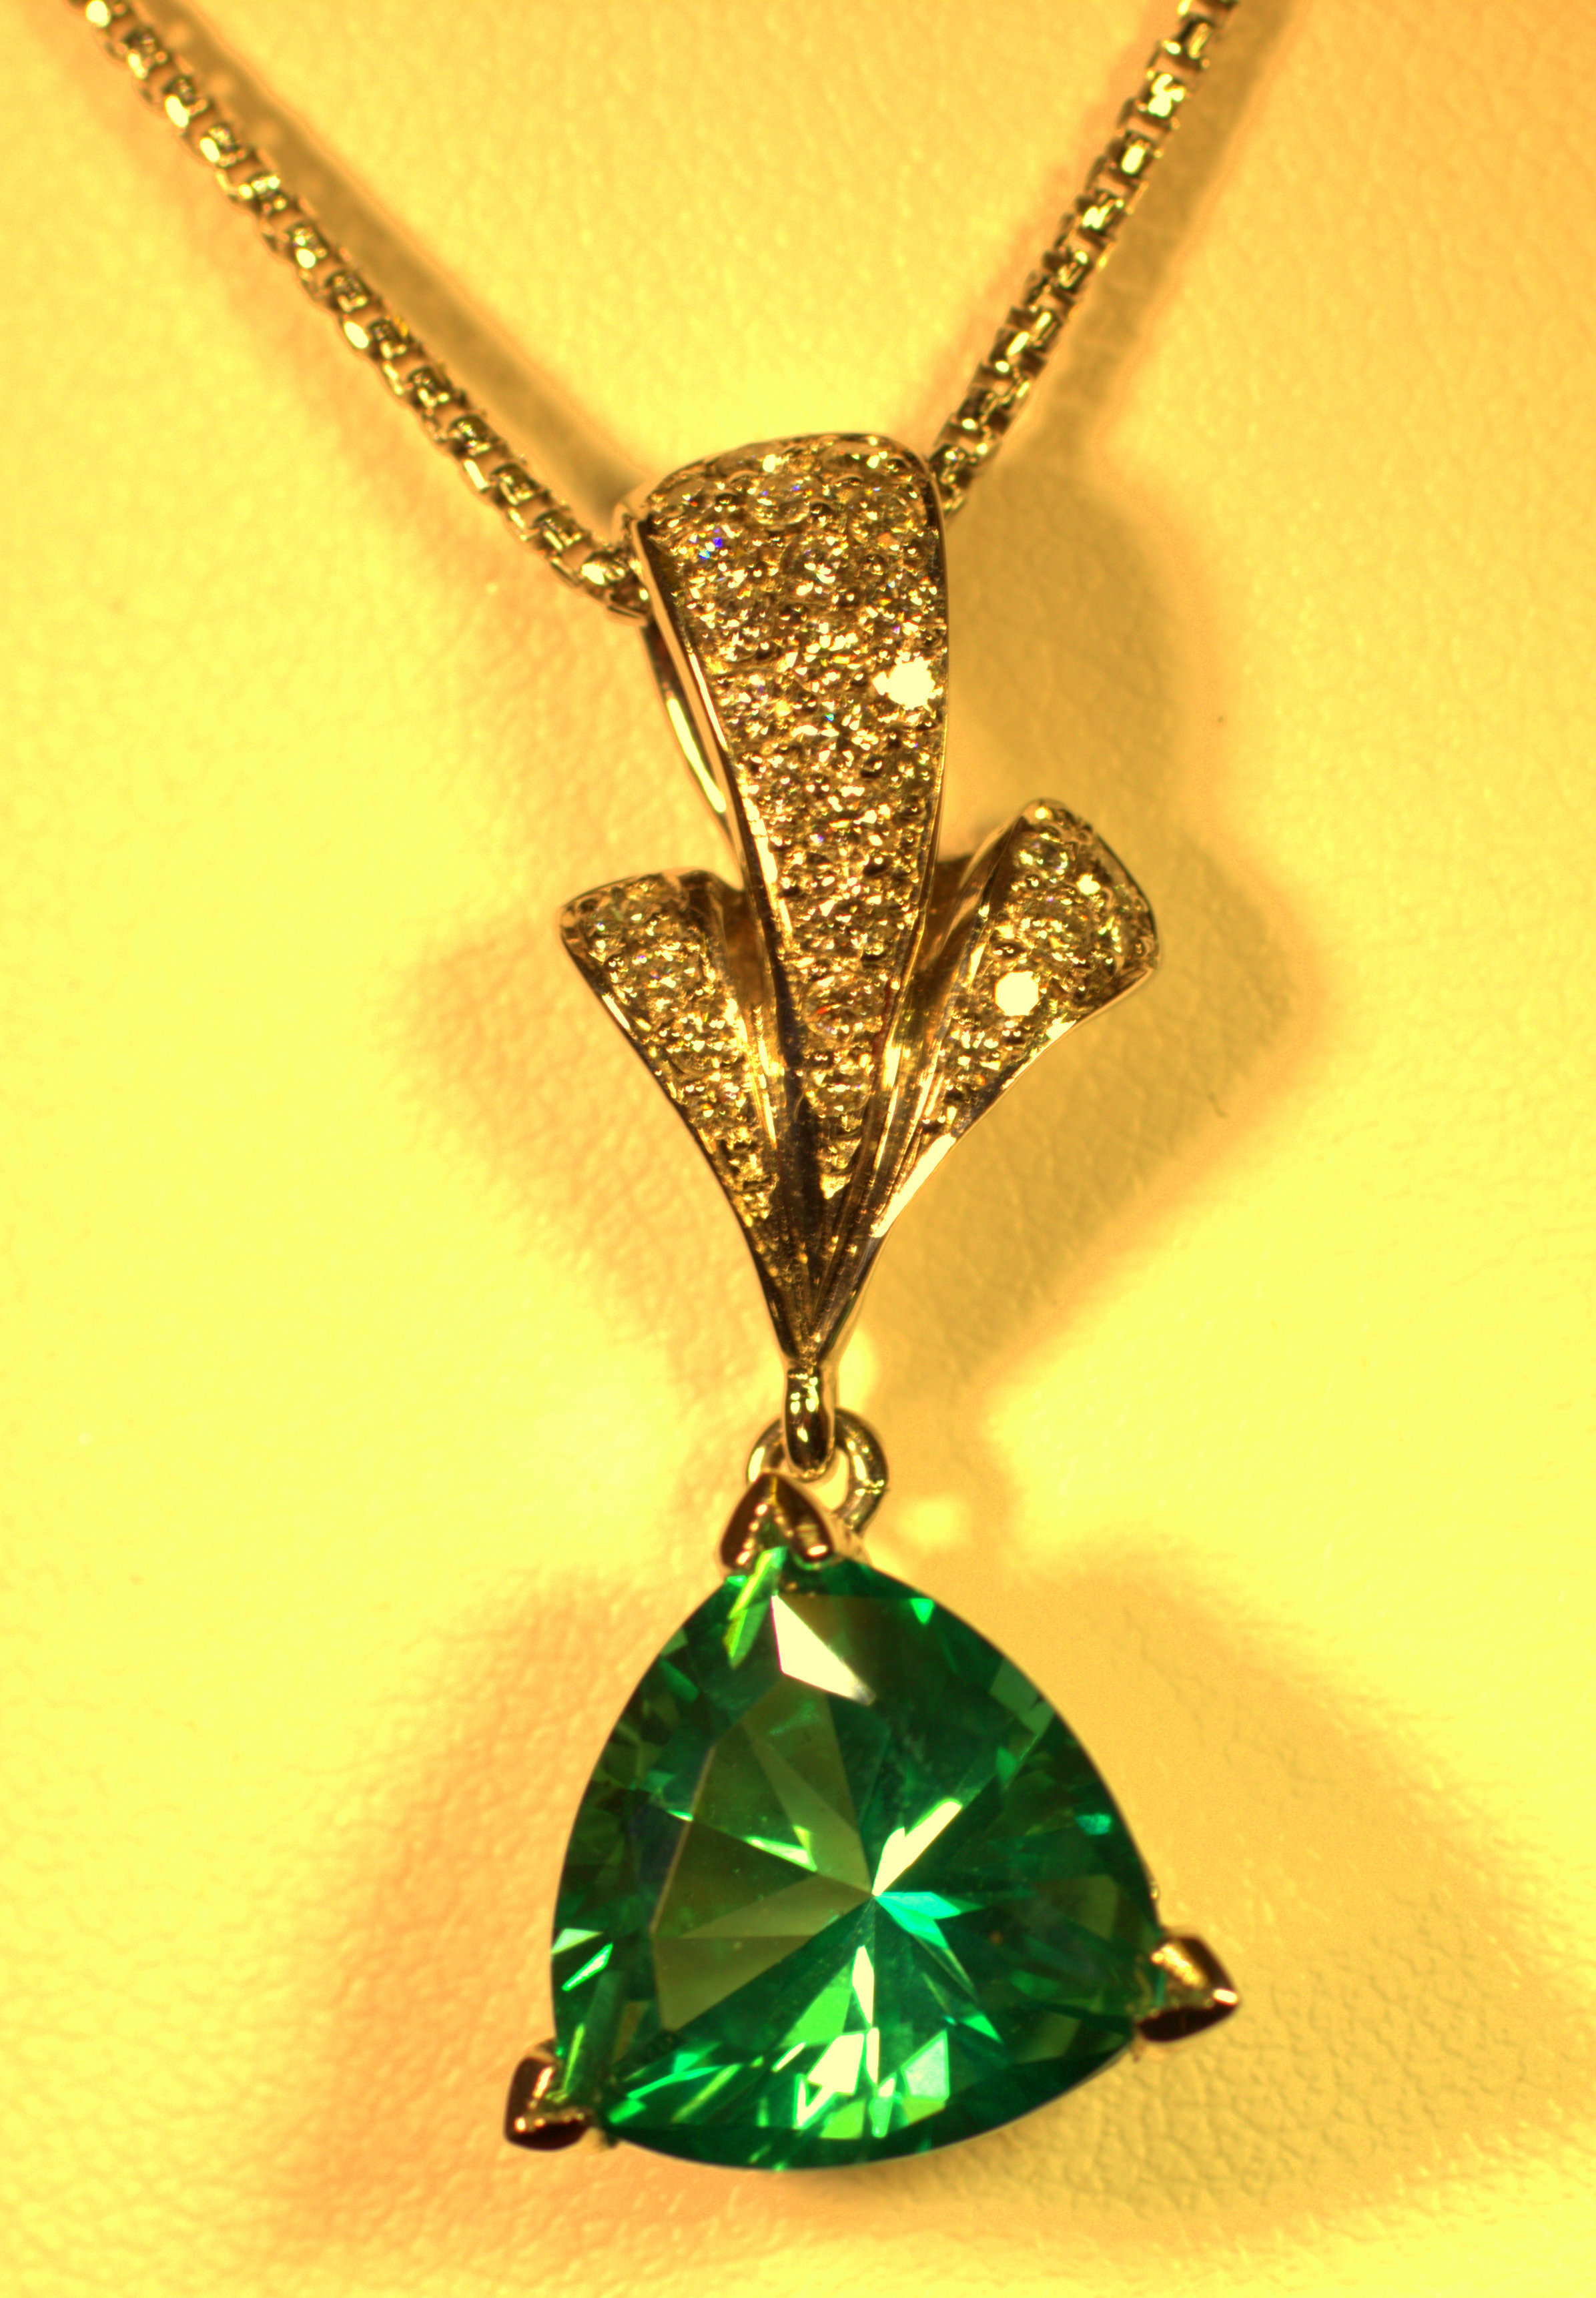 seafoam green tourmaline custom designed by Mark Schneider beautiful light seafoam green pendant with diamond accent modern with a classic twist available at marlen jewelers in rocky river minutes from cleveland.jpg